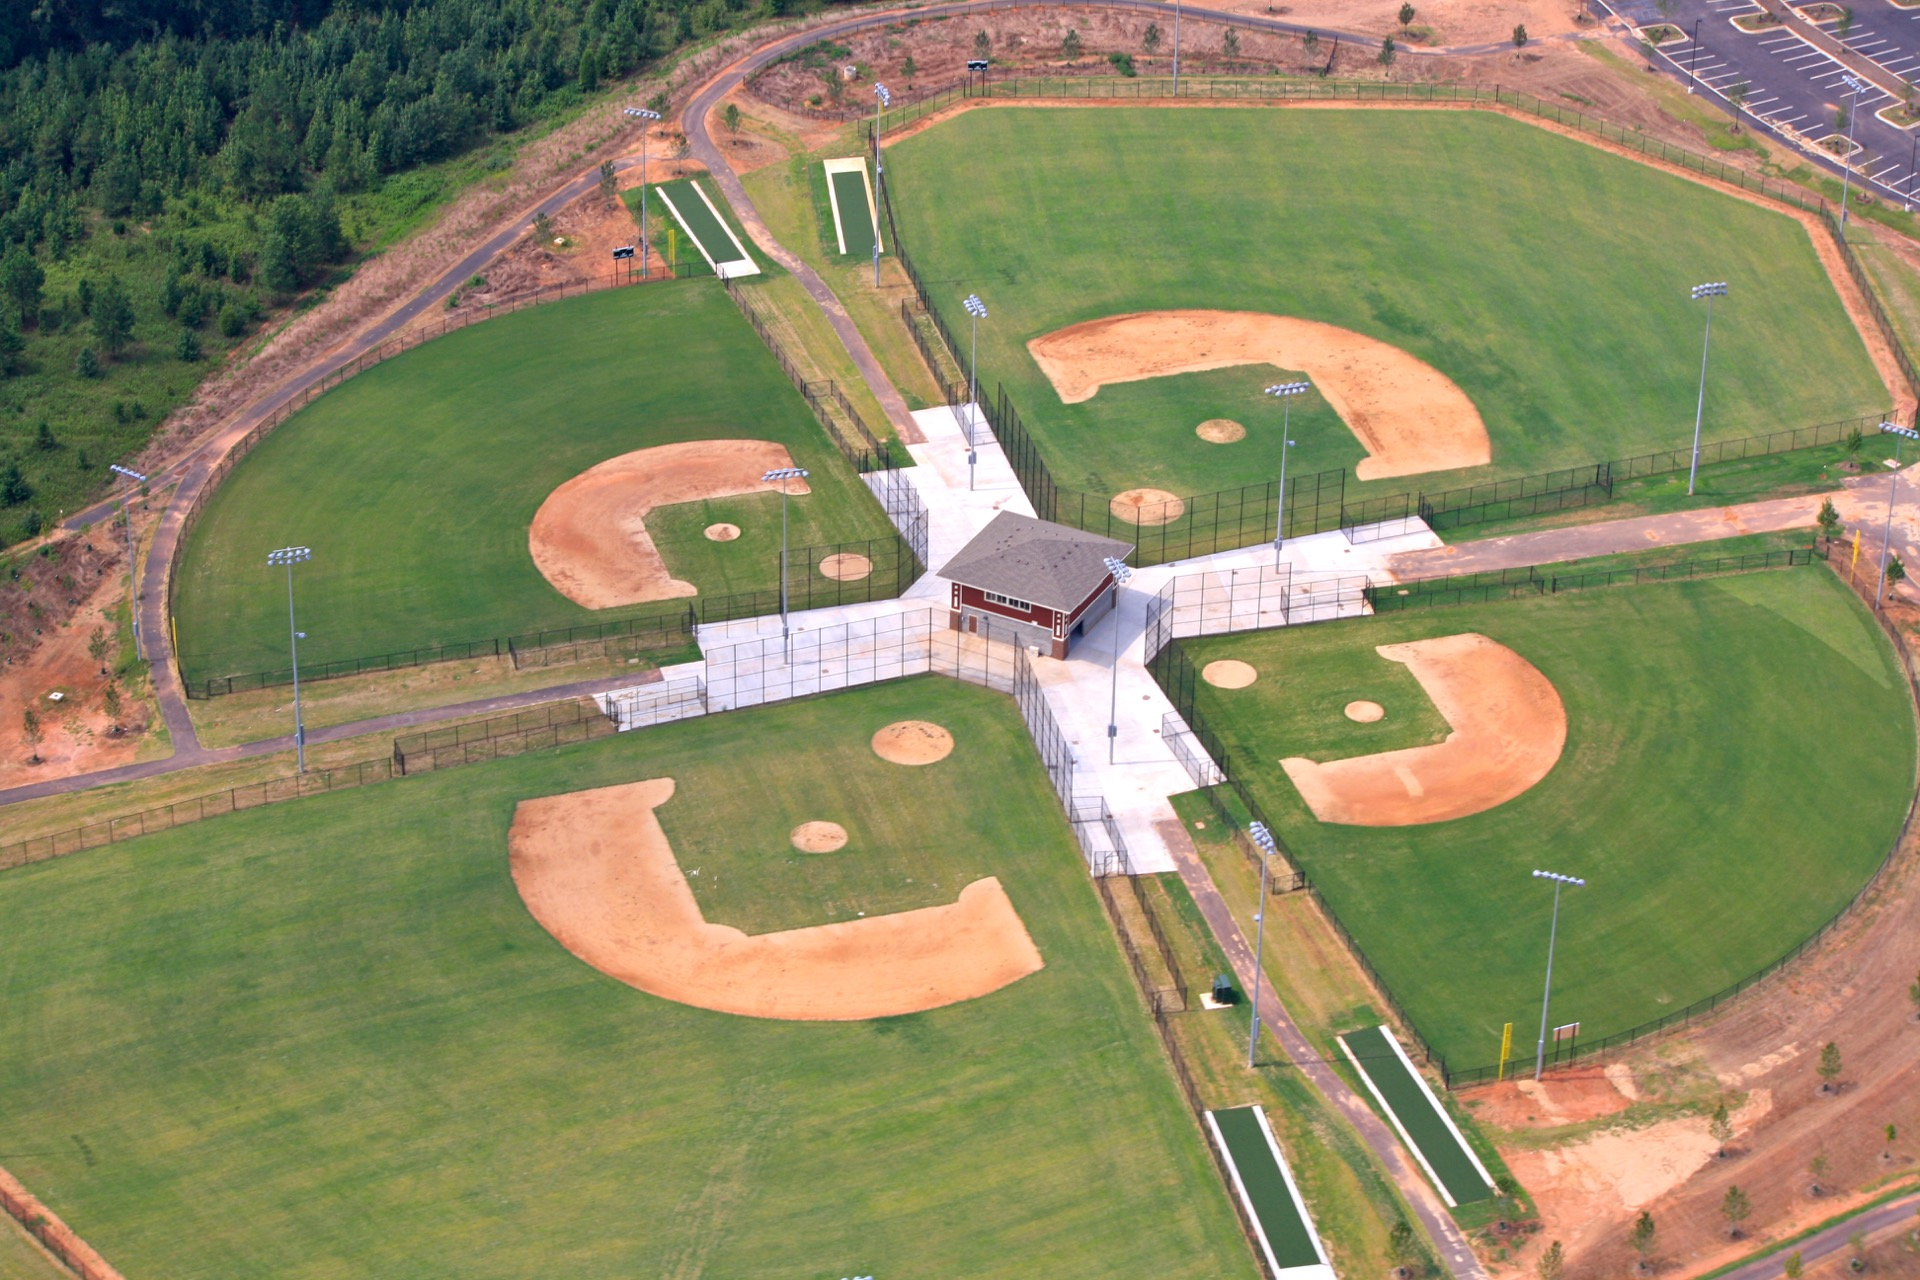 conestee park aerial view baseball fields